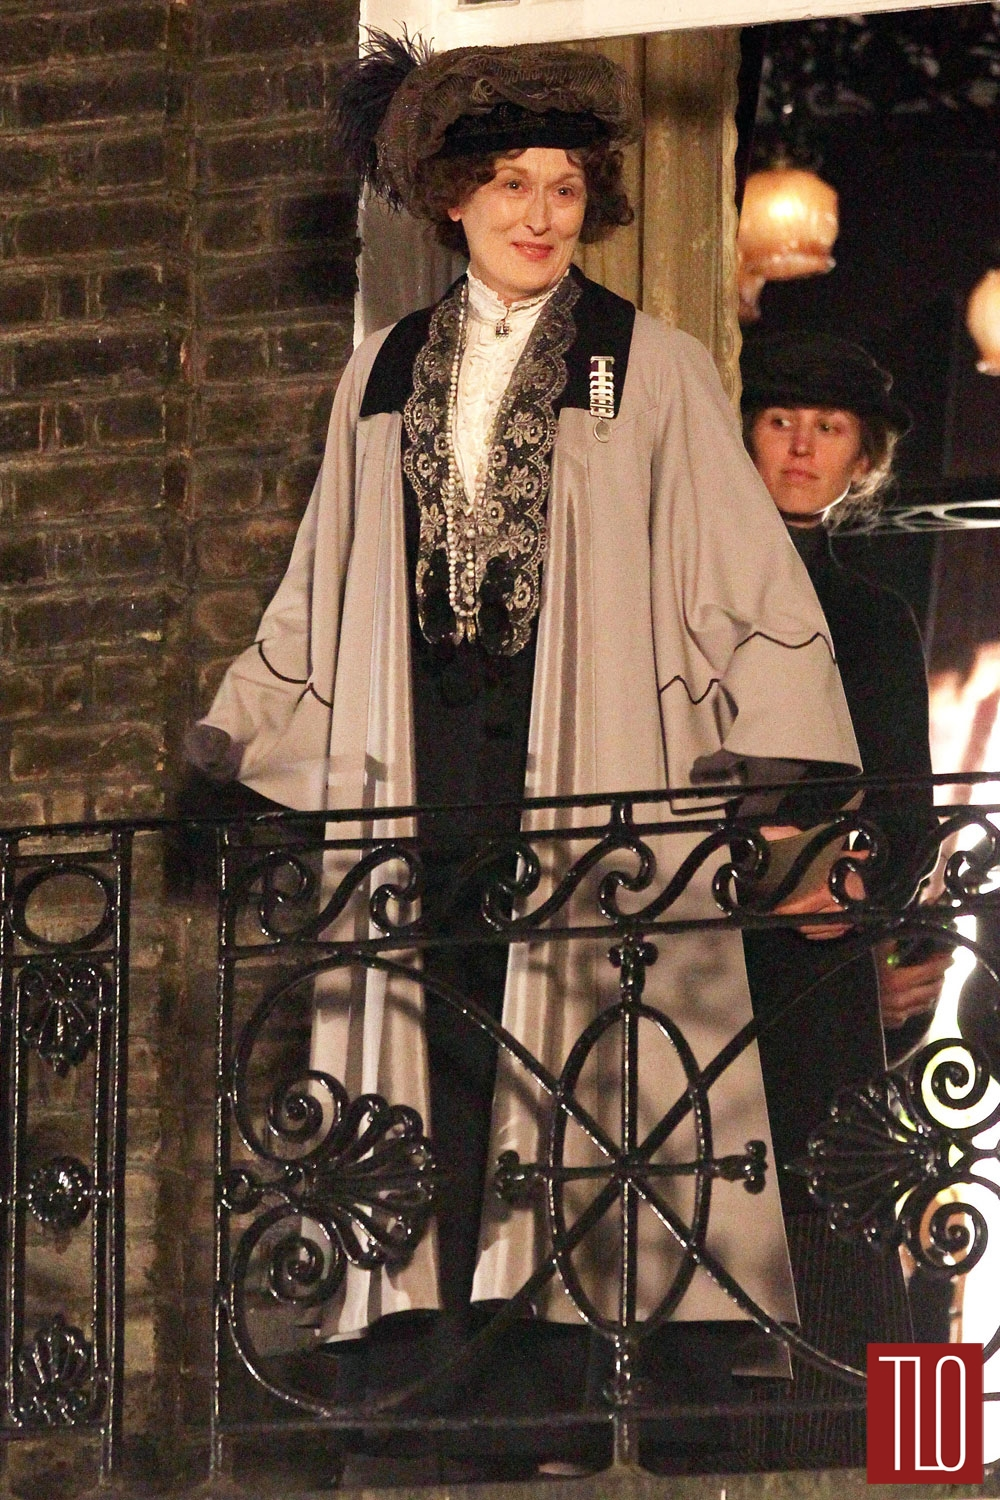 Meryl-Streep-On-Set-Suffragette-Tom-Lorenzo-Site-TLO (1)